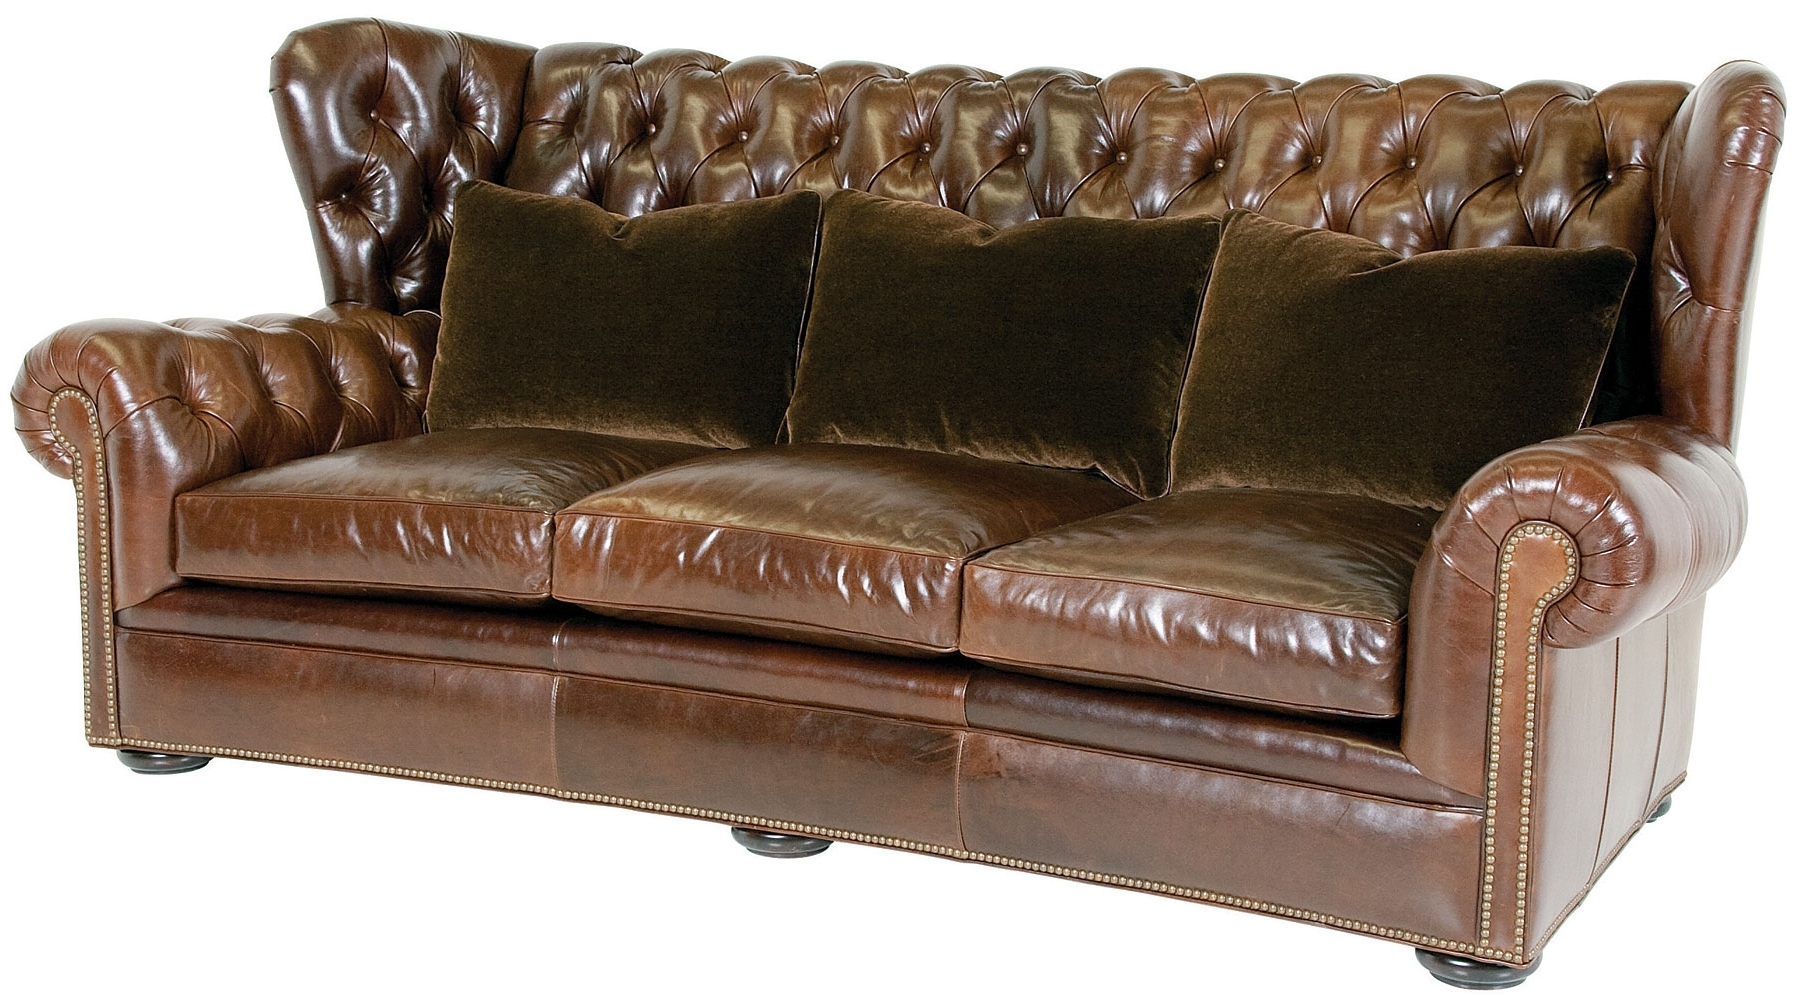 Kijiji Kitchener Sectional Sofas Throughout Widely Used Furniture : Green Tufted Chaise Lounge Furniture Making Ottawa (View 11 of 20)